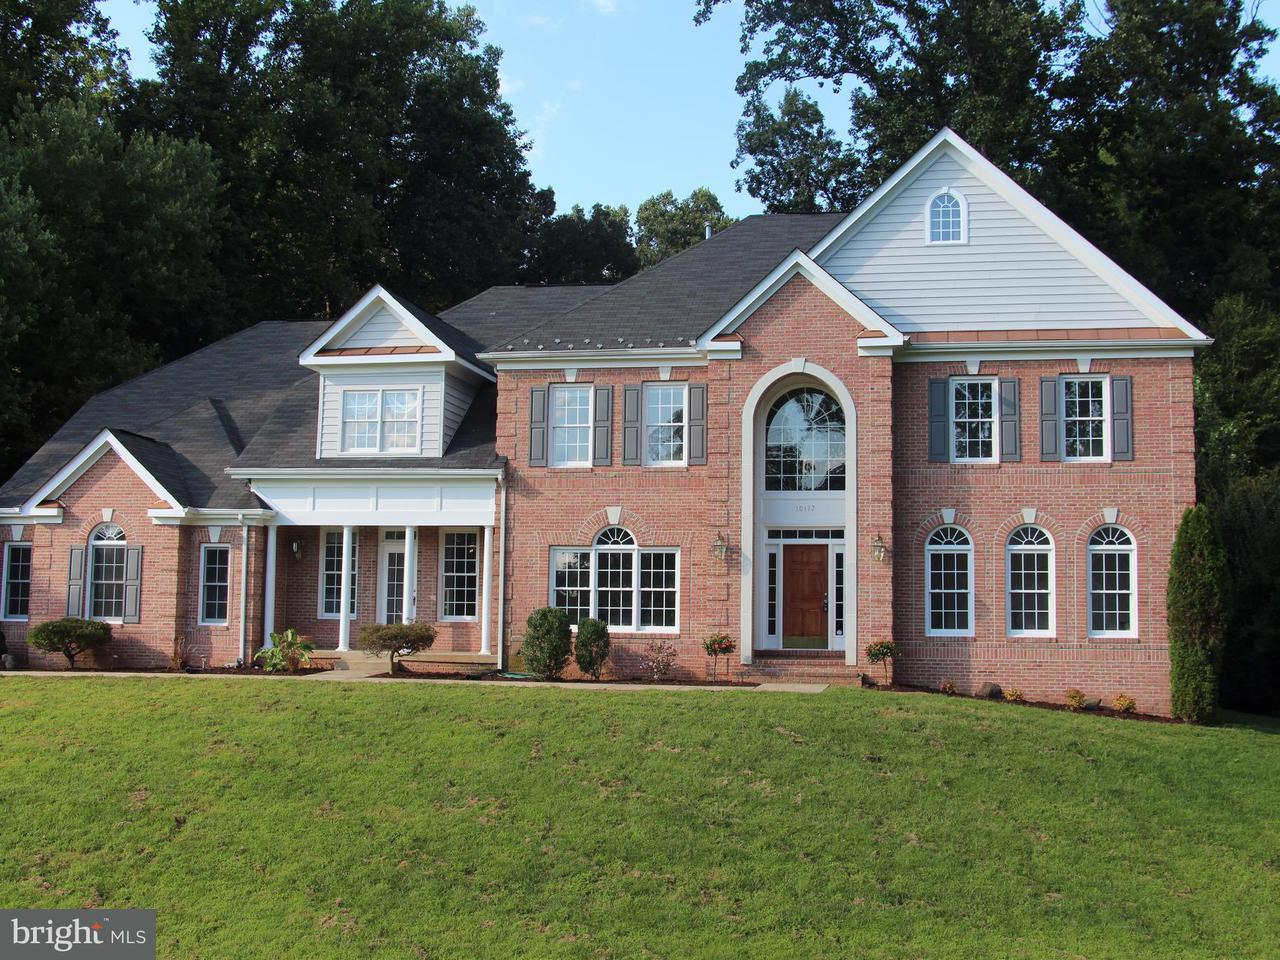 Single Family Home for Sale at 10117 CARLINGTON VALLEY Court 10117 CARLINGTON VALLEY Court Manassas, Virginia 20111 United States